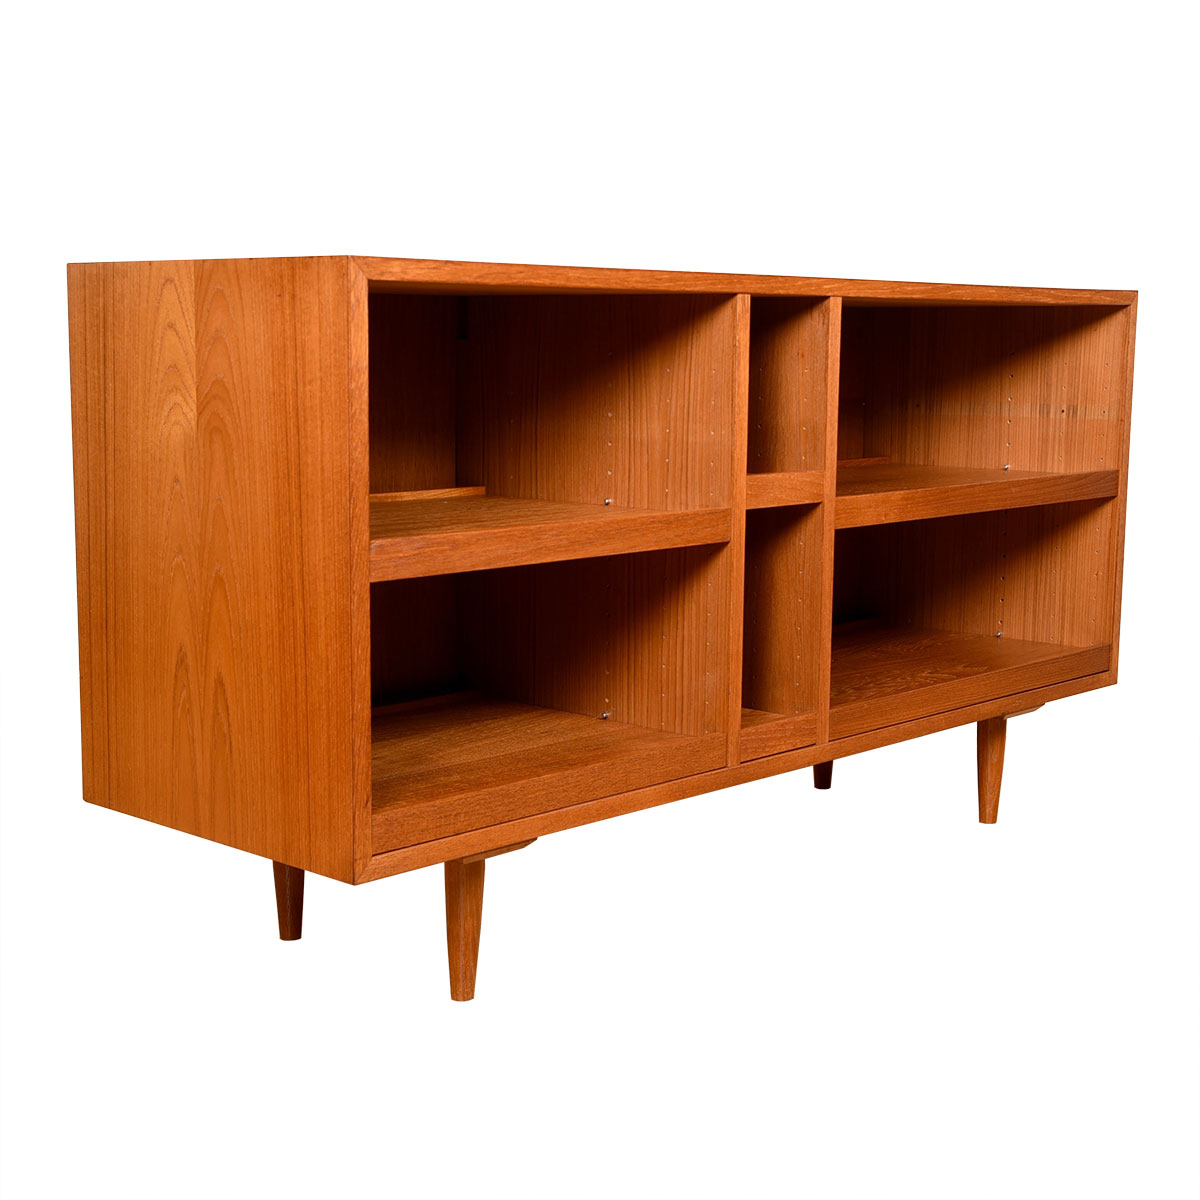 Open Danish Teak Media Cabinet w/ Pull-Out Shelves!